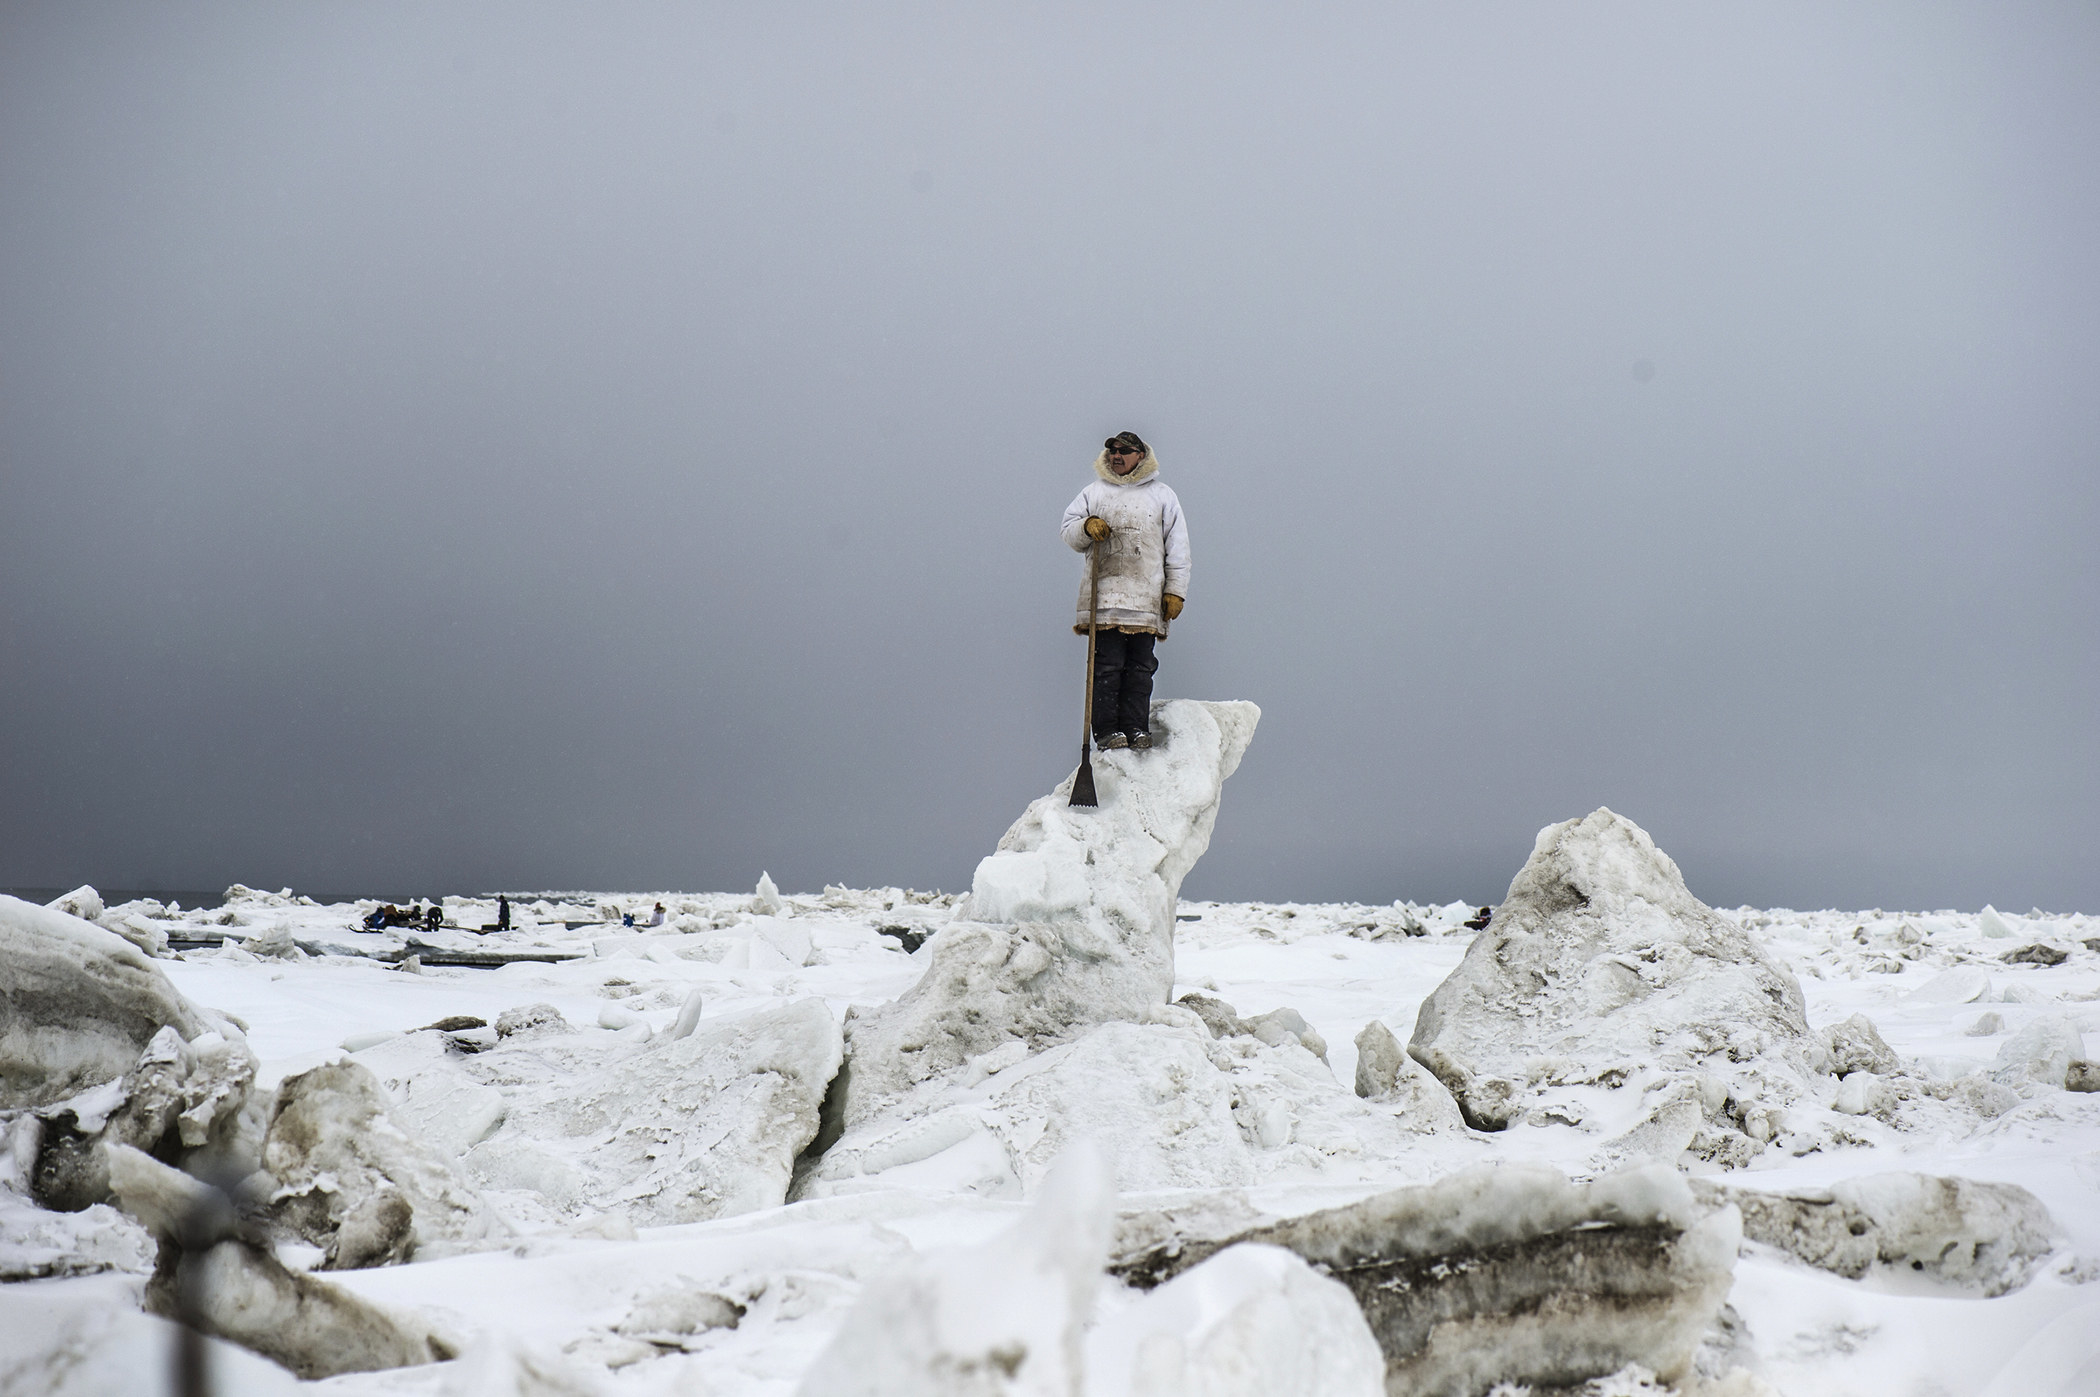 An Inuit man looks out over the ice fields of Alaska while standing on a large ice pillar